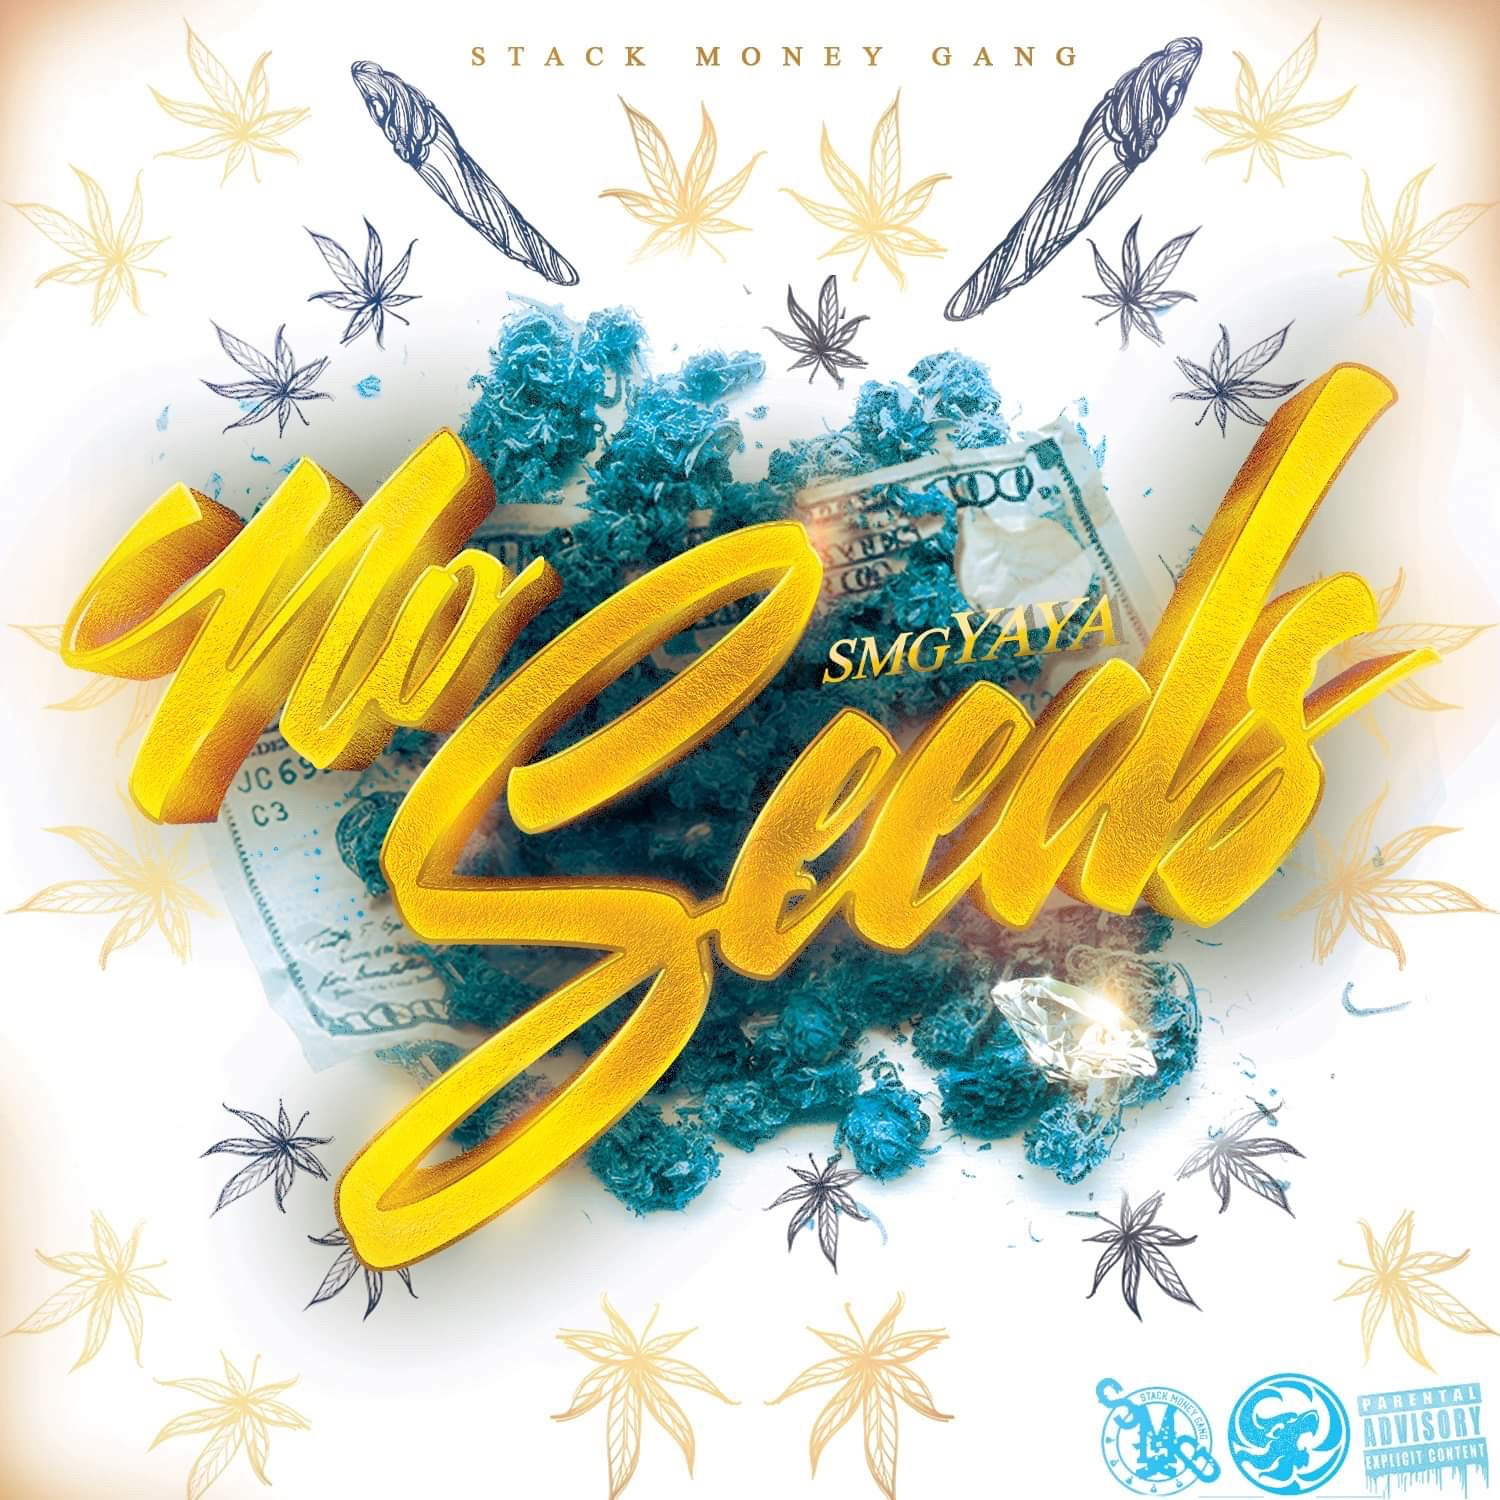 SMG YaYa Announces New Mixtape 'No Seeds'